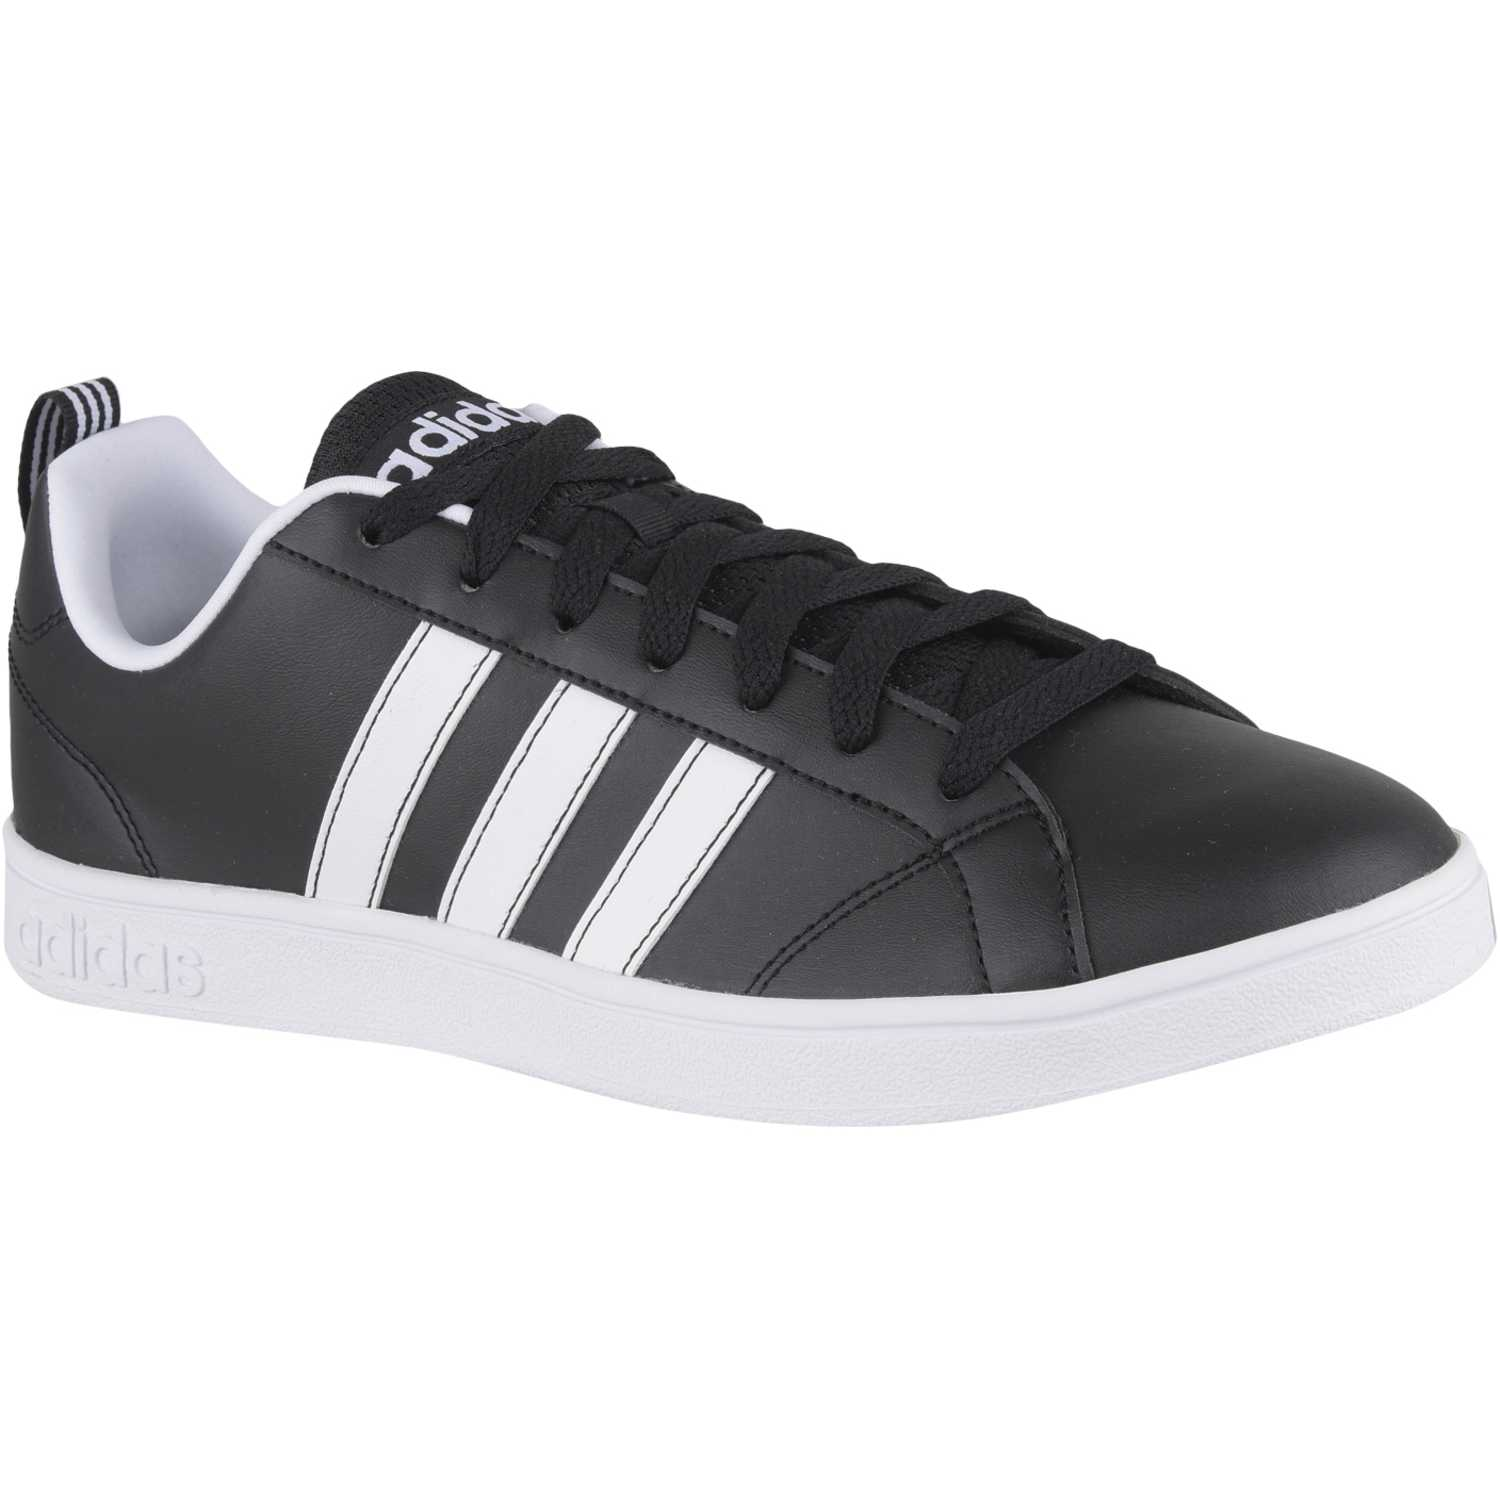 info for 1abaa aee73 adidas NEO Negro   blanco de Hombre modelo vs advantage Walking Urban  Zapatillas Deportivo Casual